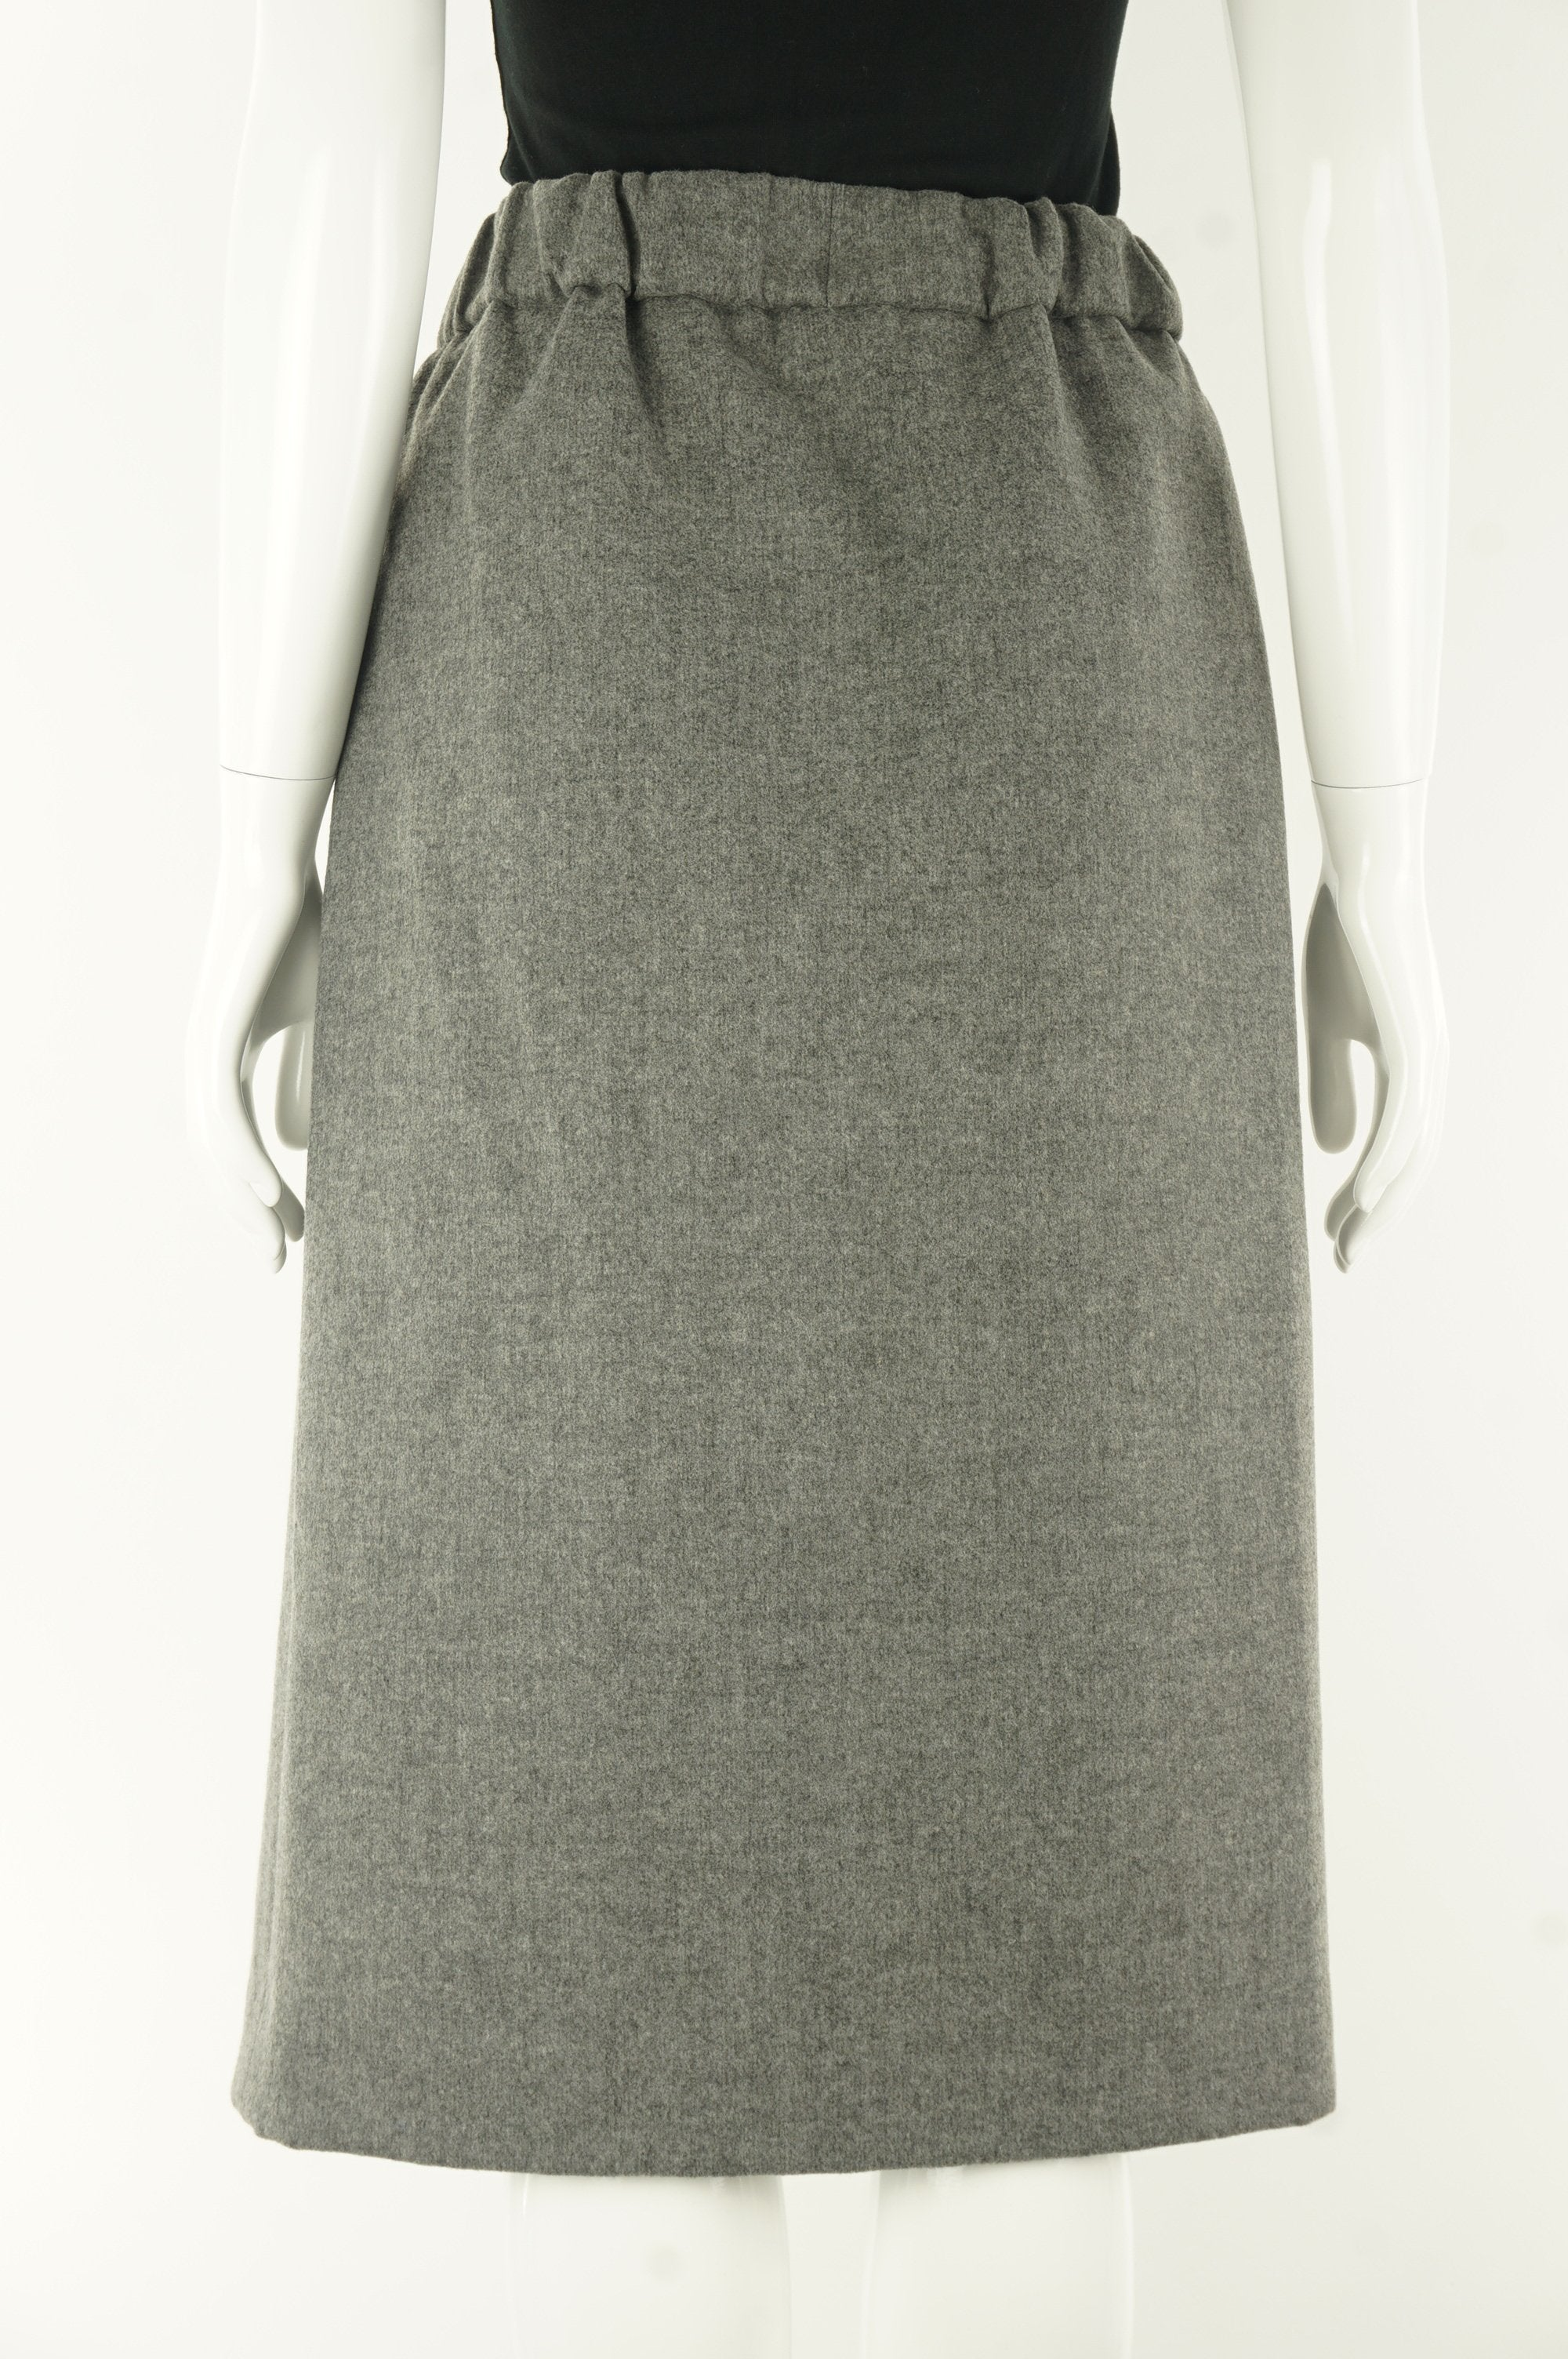 Le Fou Wilfred Wool Winter Pencil Skirt, Sitting in the office the whole day but still have to embrace the cold while walking to lunch? This wool skirt covers it all.Not even mentionining the comfortable elastic waistband!, Grey, 43% Polyester, 22% wool, 19% viscose, 7% polyamide, 6% cotton, 3% elastane, women's Dresses & Skirts, women's Grey Dresses & Skirts, Le Fou Wilfred women's Dresses & Skirts, women's winter warm skirt, Aritzia women's wool skirt